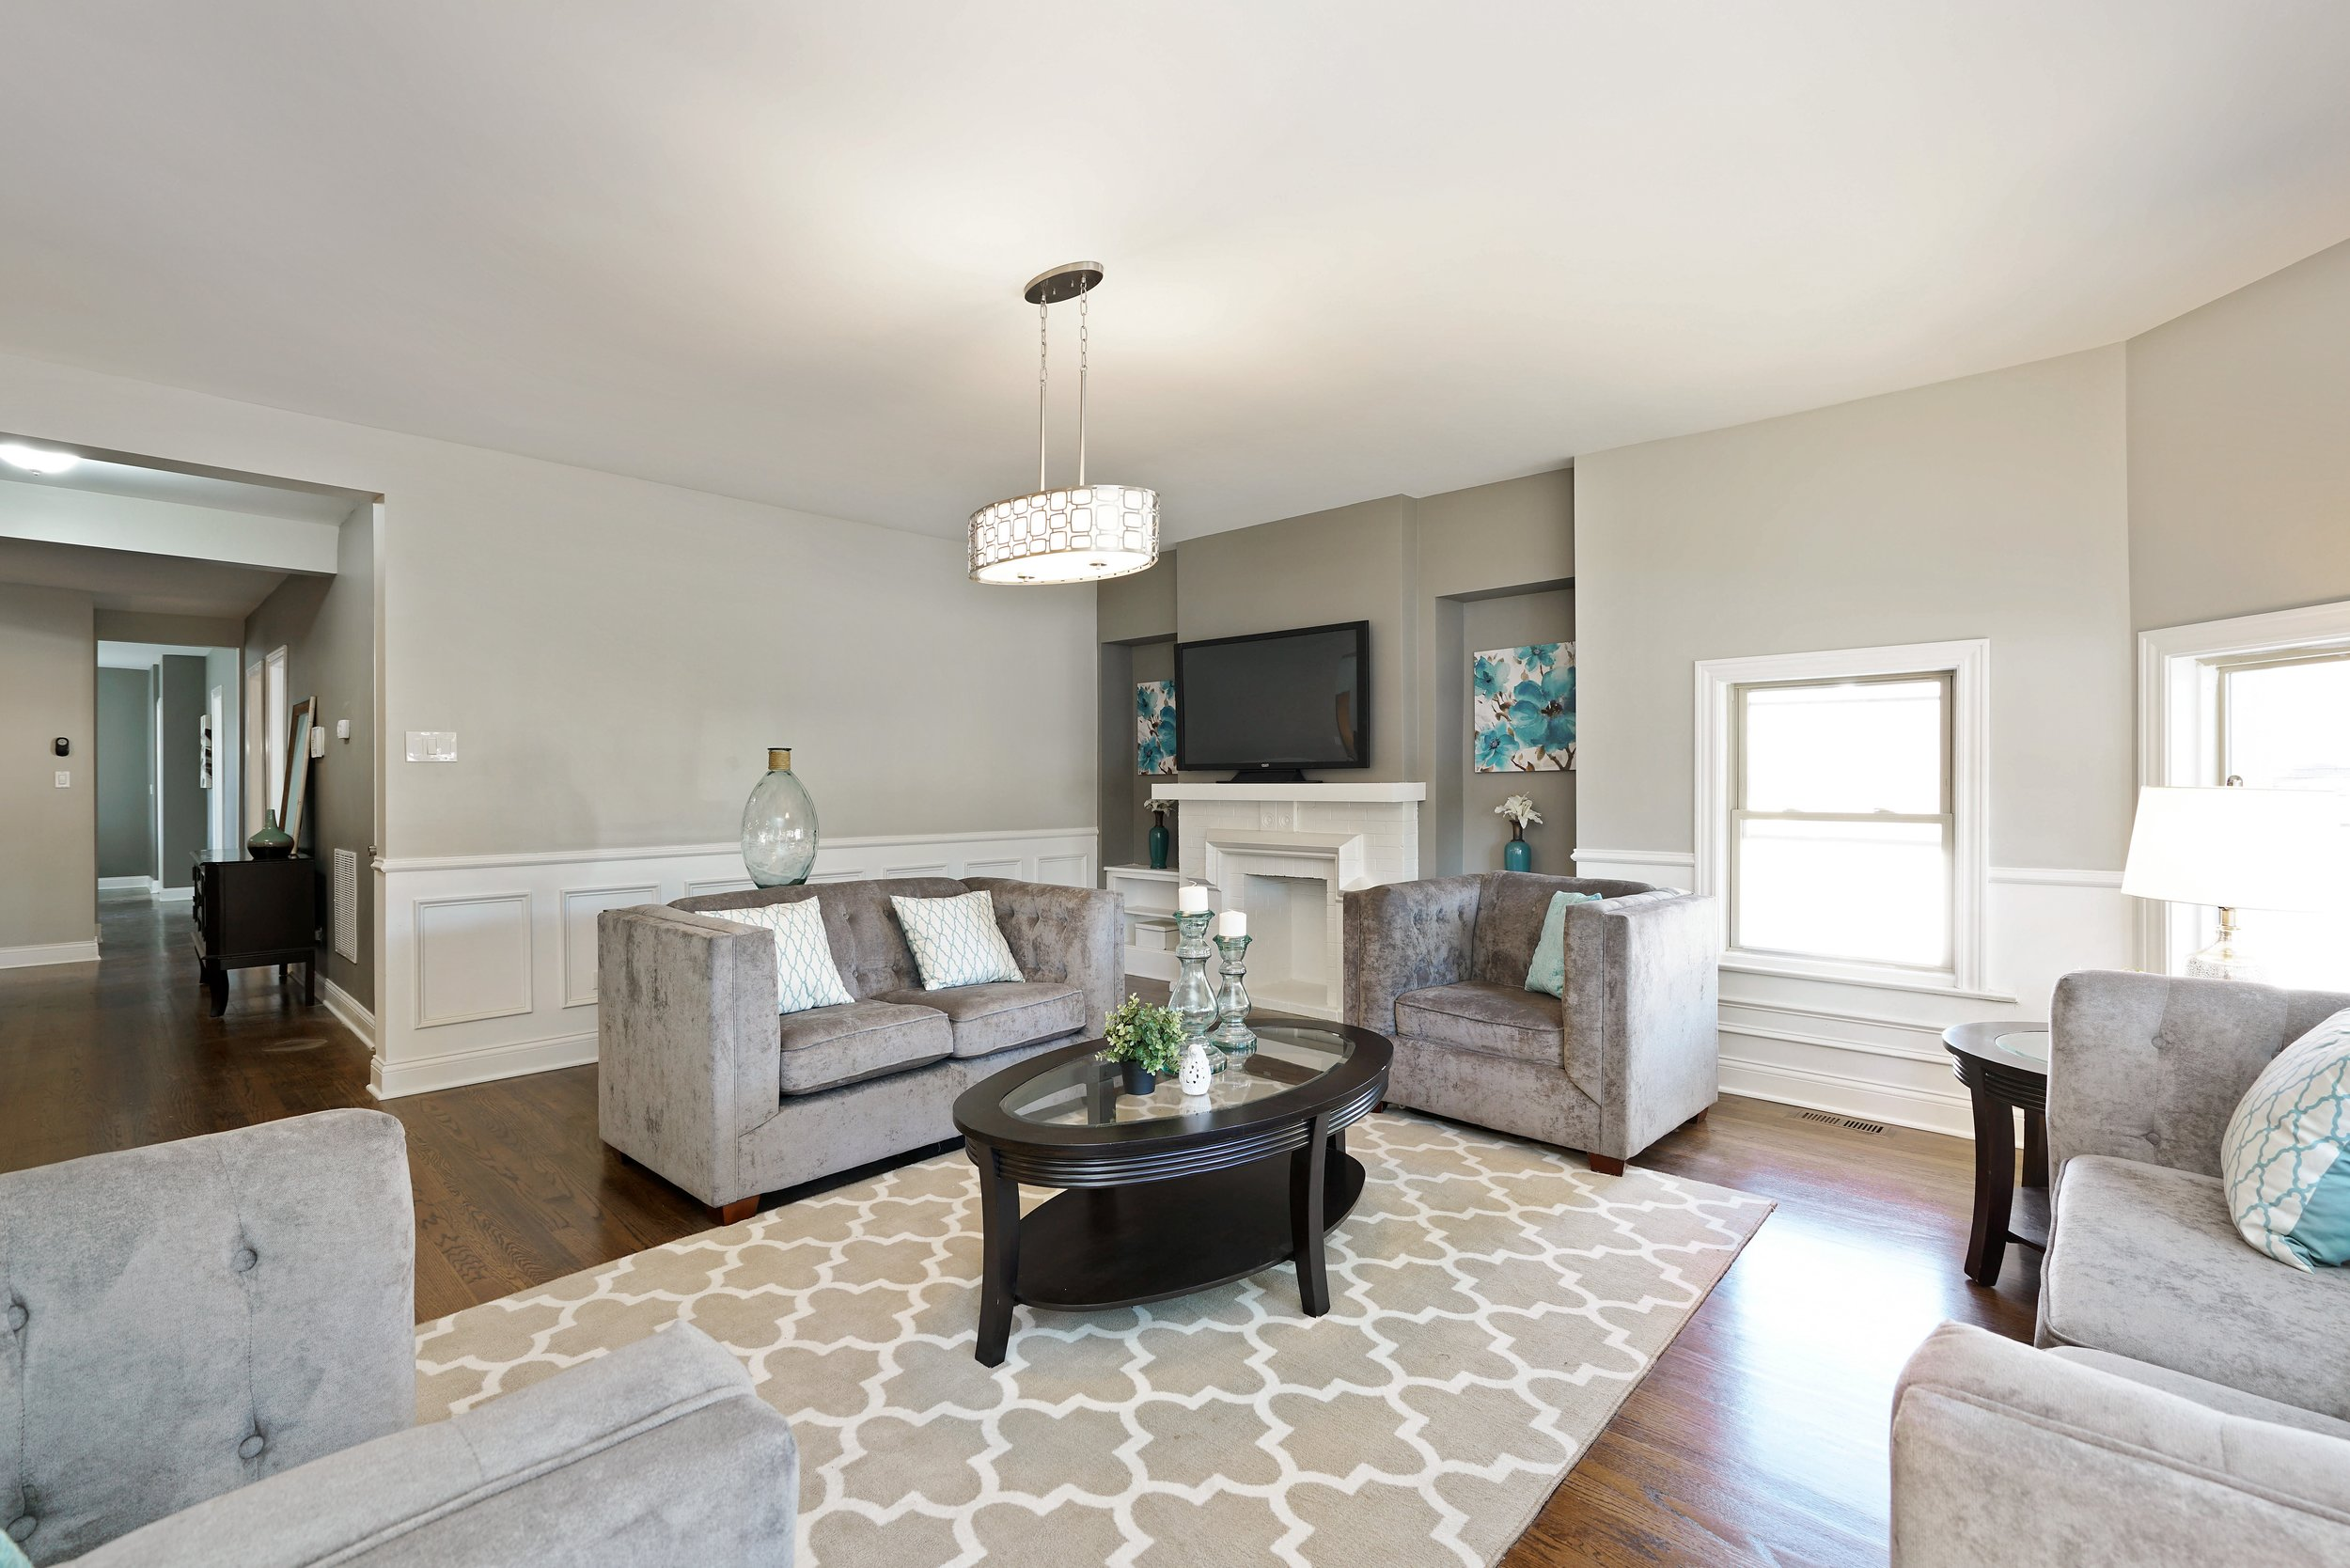 8514 S Hermitage Ave - $249,000 (SOLD)